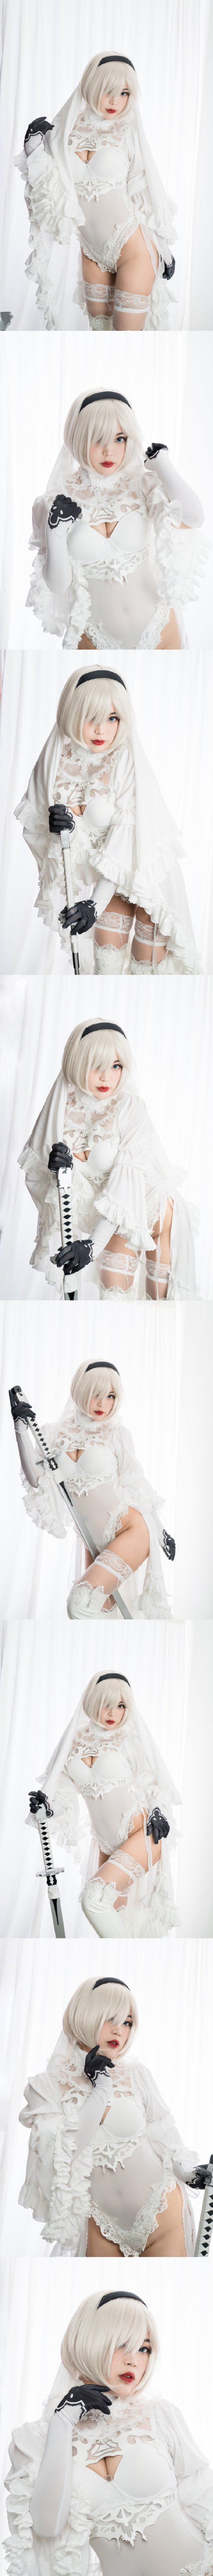 Black and White 2B Cosplay